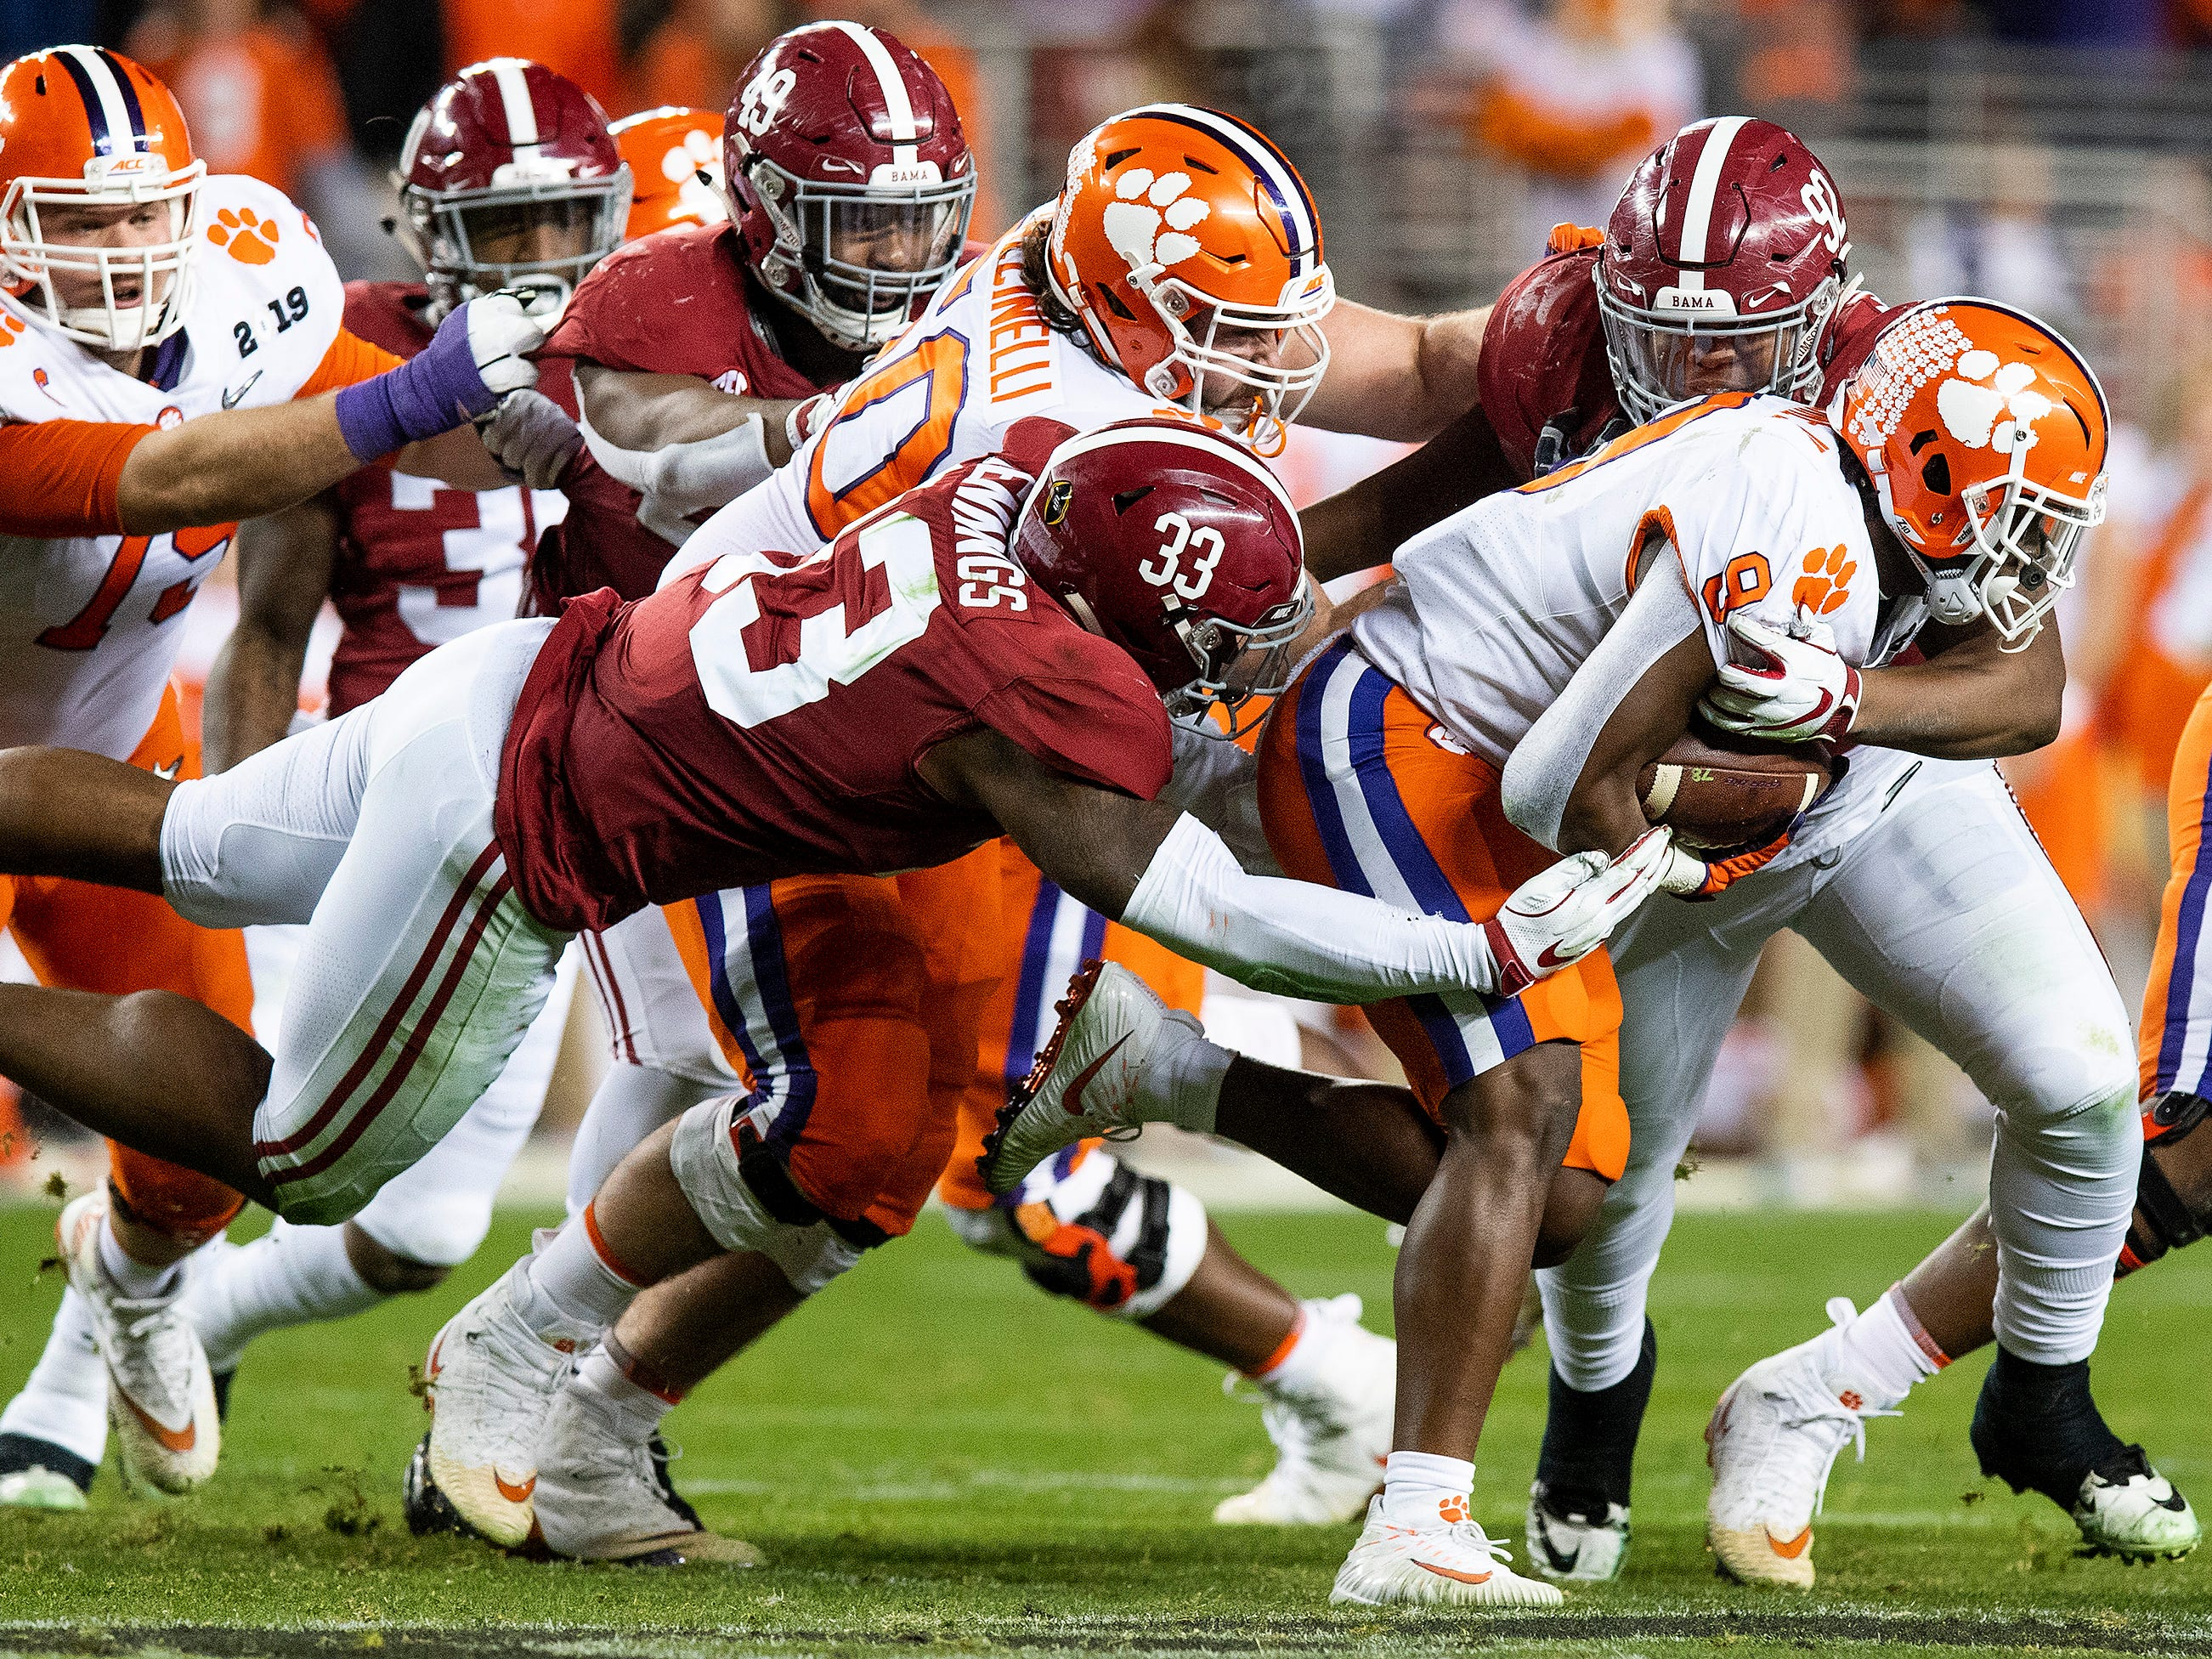 Alabama linebacker Anfernee Jennings (33) and defensive lineman Quinnen Williams (92) stops Clemson running back Travis Etienne (9) In second half action of the College Football Playoff National Championship game at Levi's Stadium in Santa Clara, Ca., on Monday January 7, 2019.